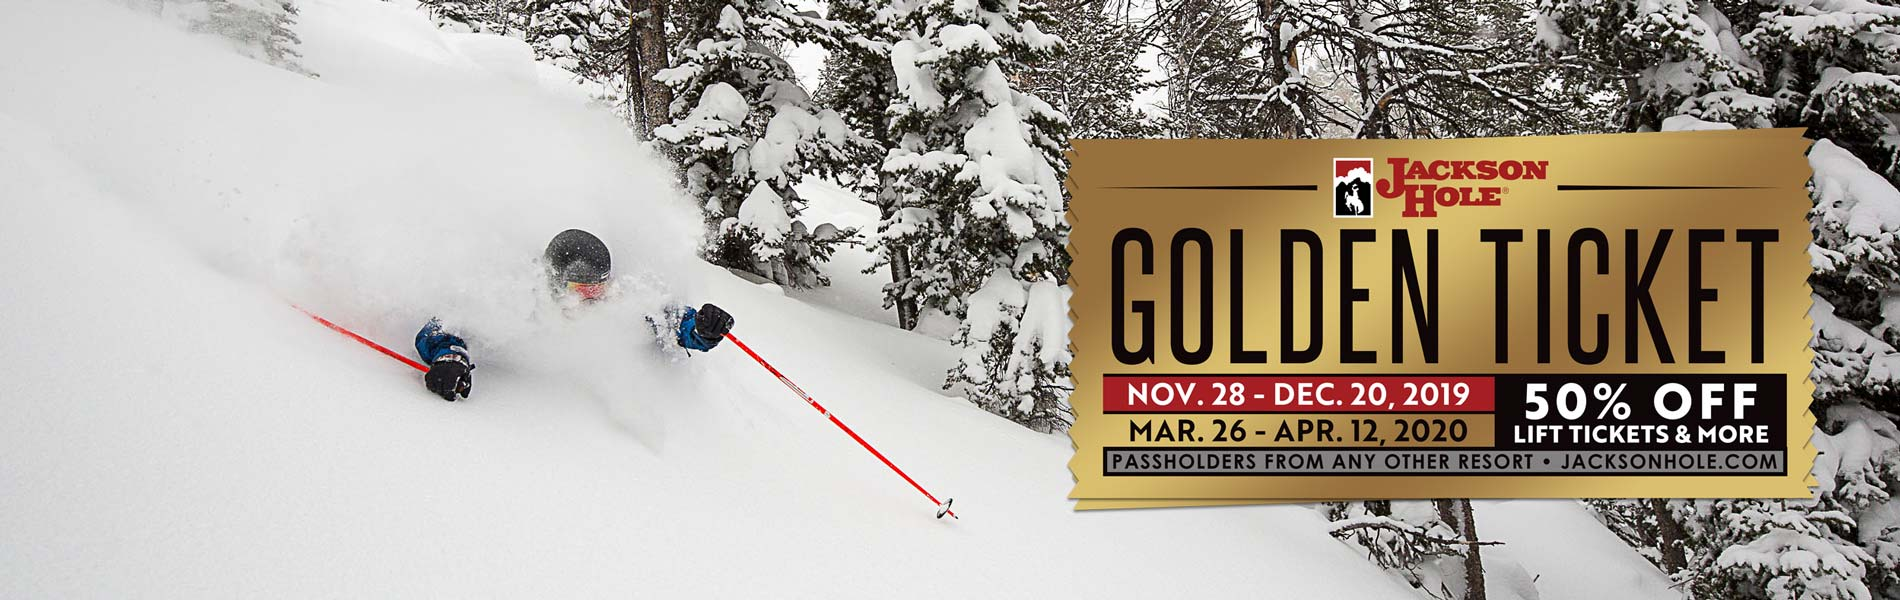 Golden Ticket november 28 to december 20 2019 and march 26 to april 12 2020. 50 percent off lift ticket and more.